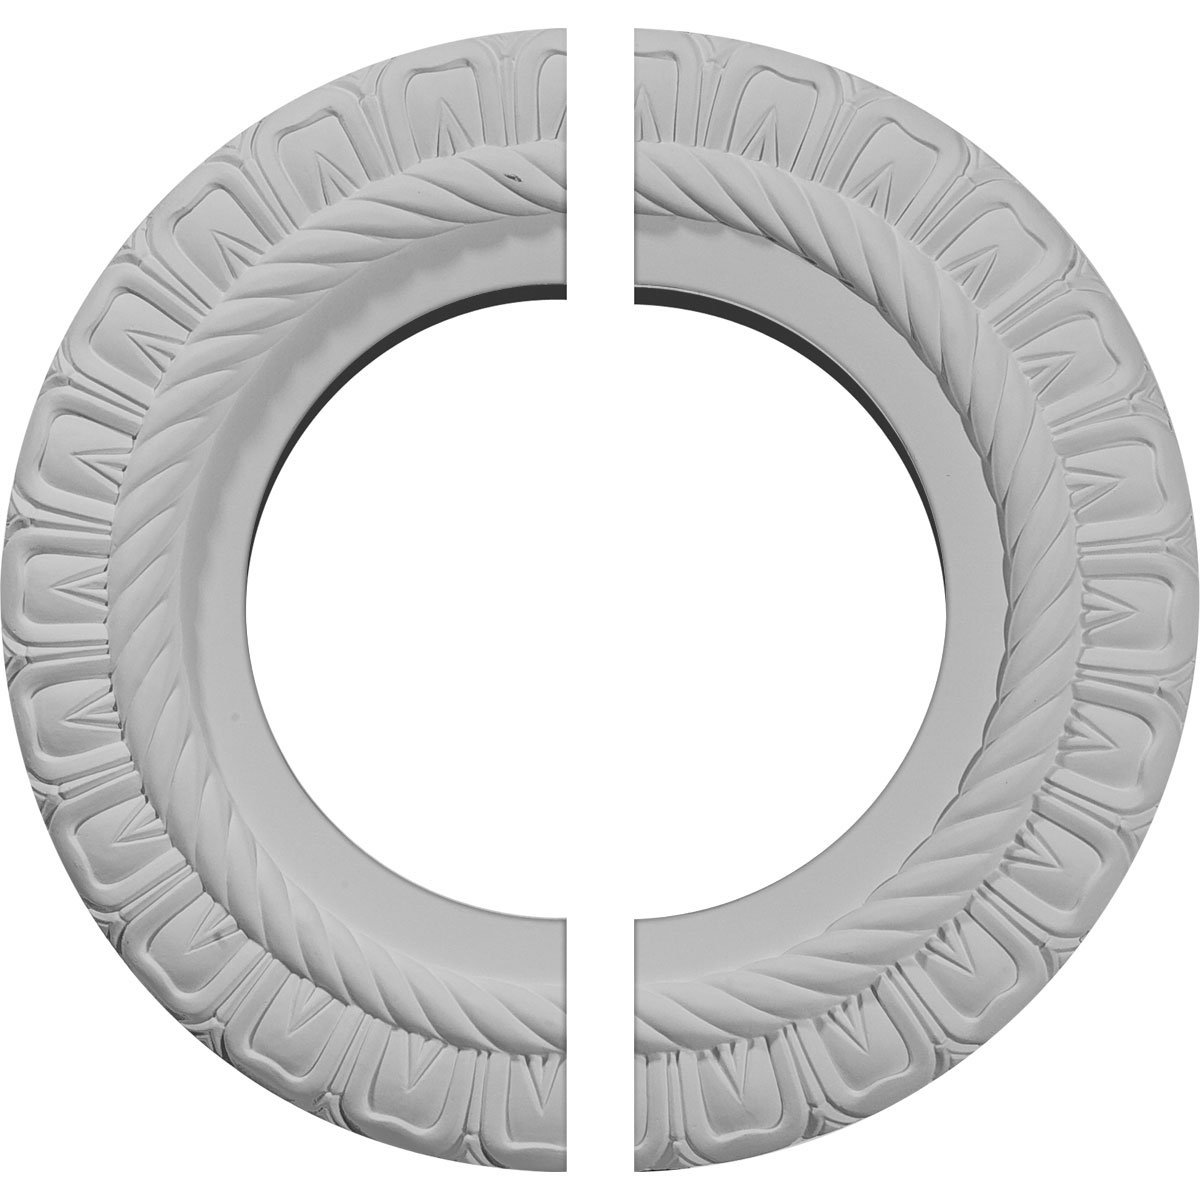 Ekena Millwork CM10CL2 10 5/8''OD x 5 3/4''ID x 1/2''P Claremont Ceiling Medallion, Fits Canopies up to 7'', 2 Piece